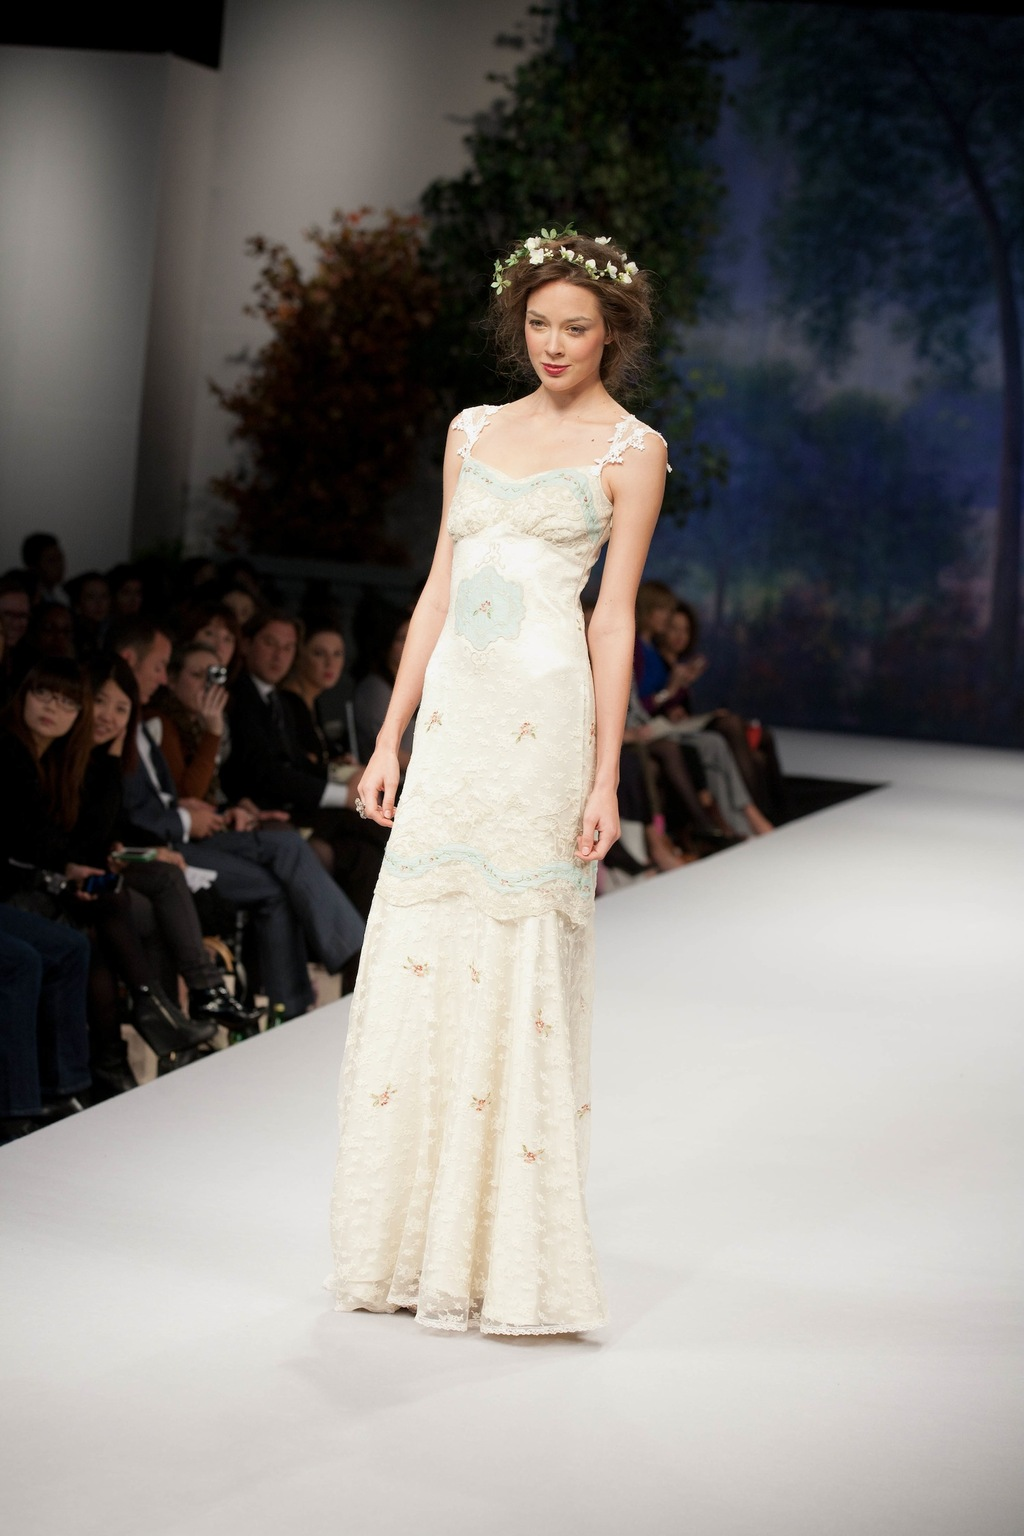 Spring_2012_wedding_dress_claire_pettibone_ooh_la_la.full